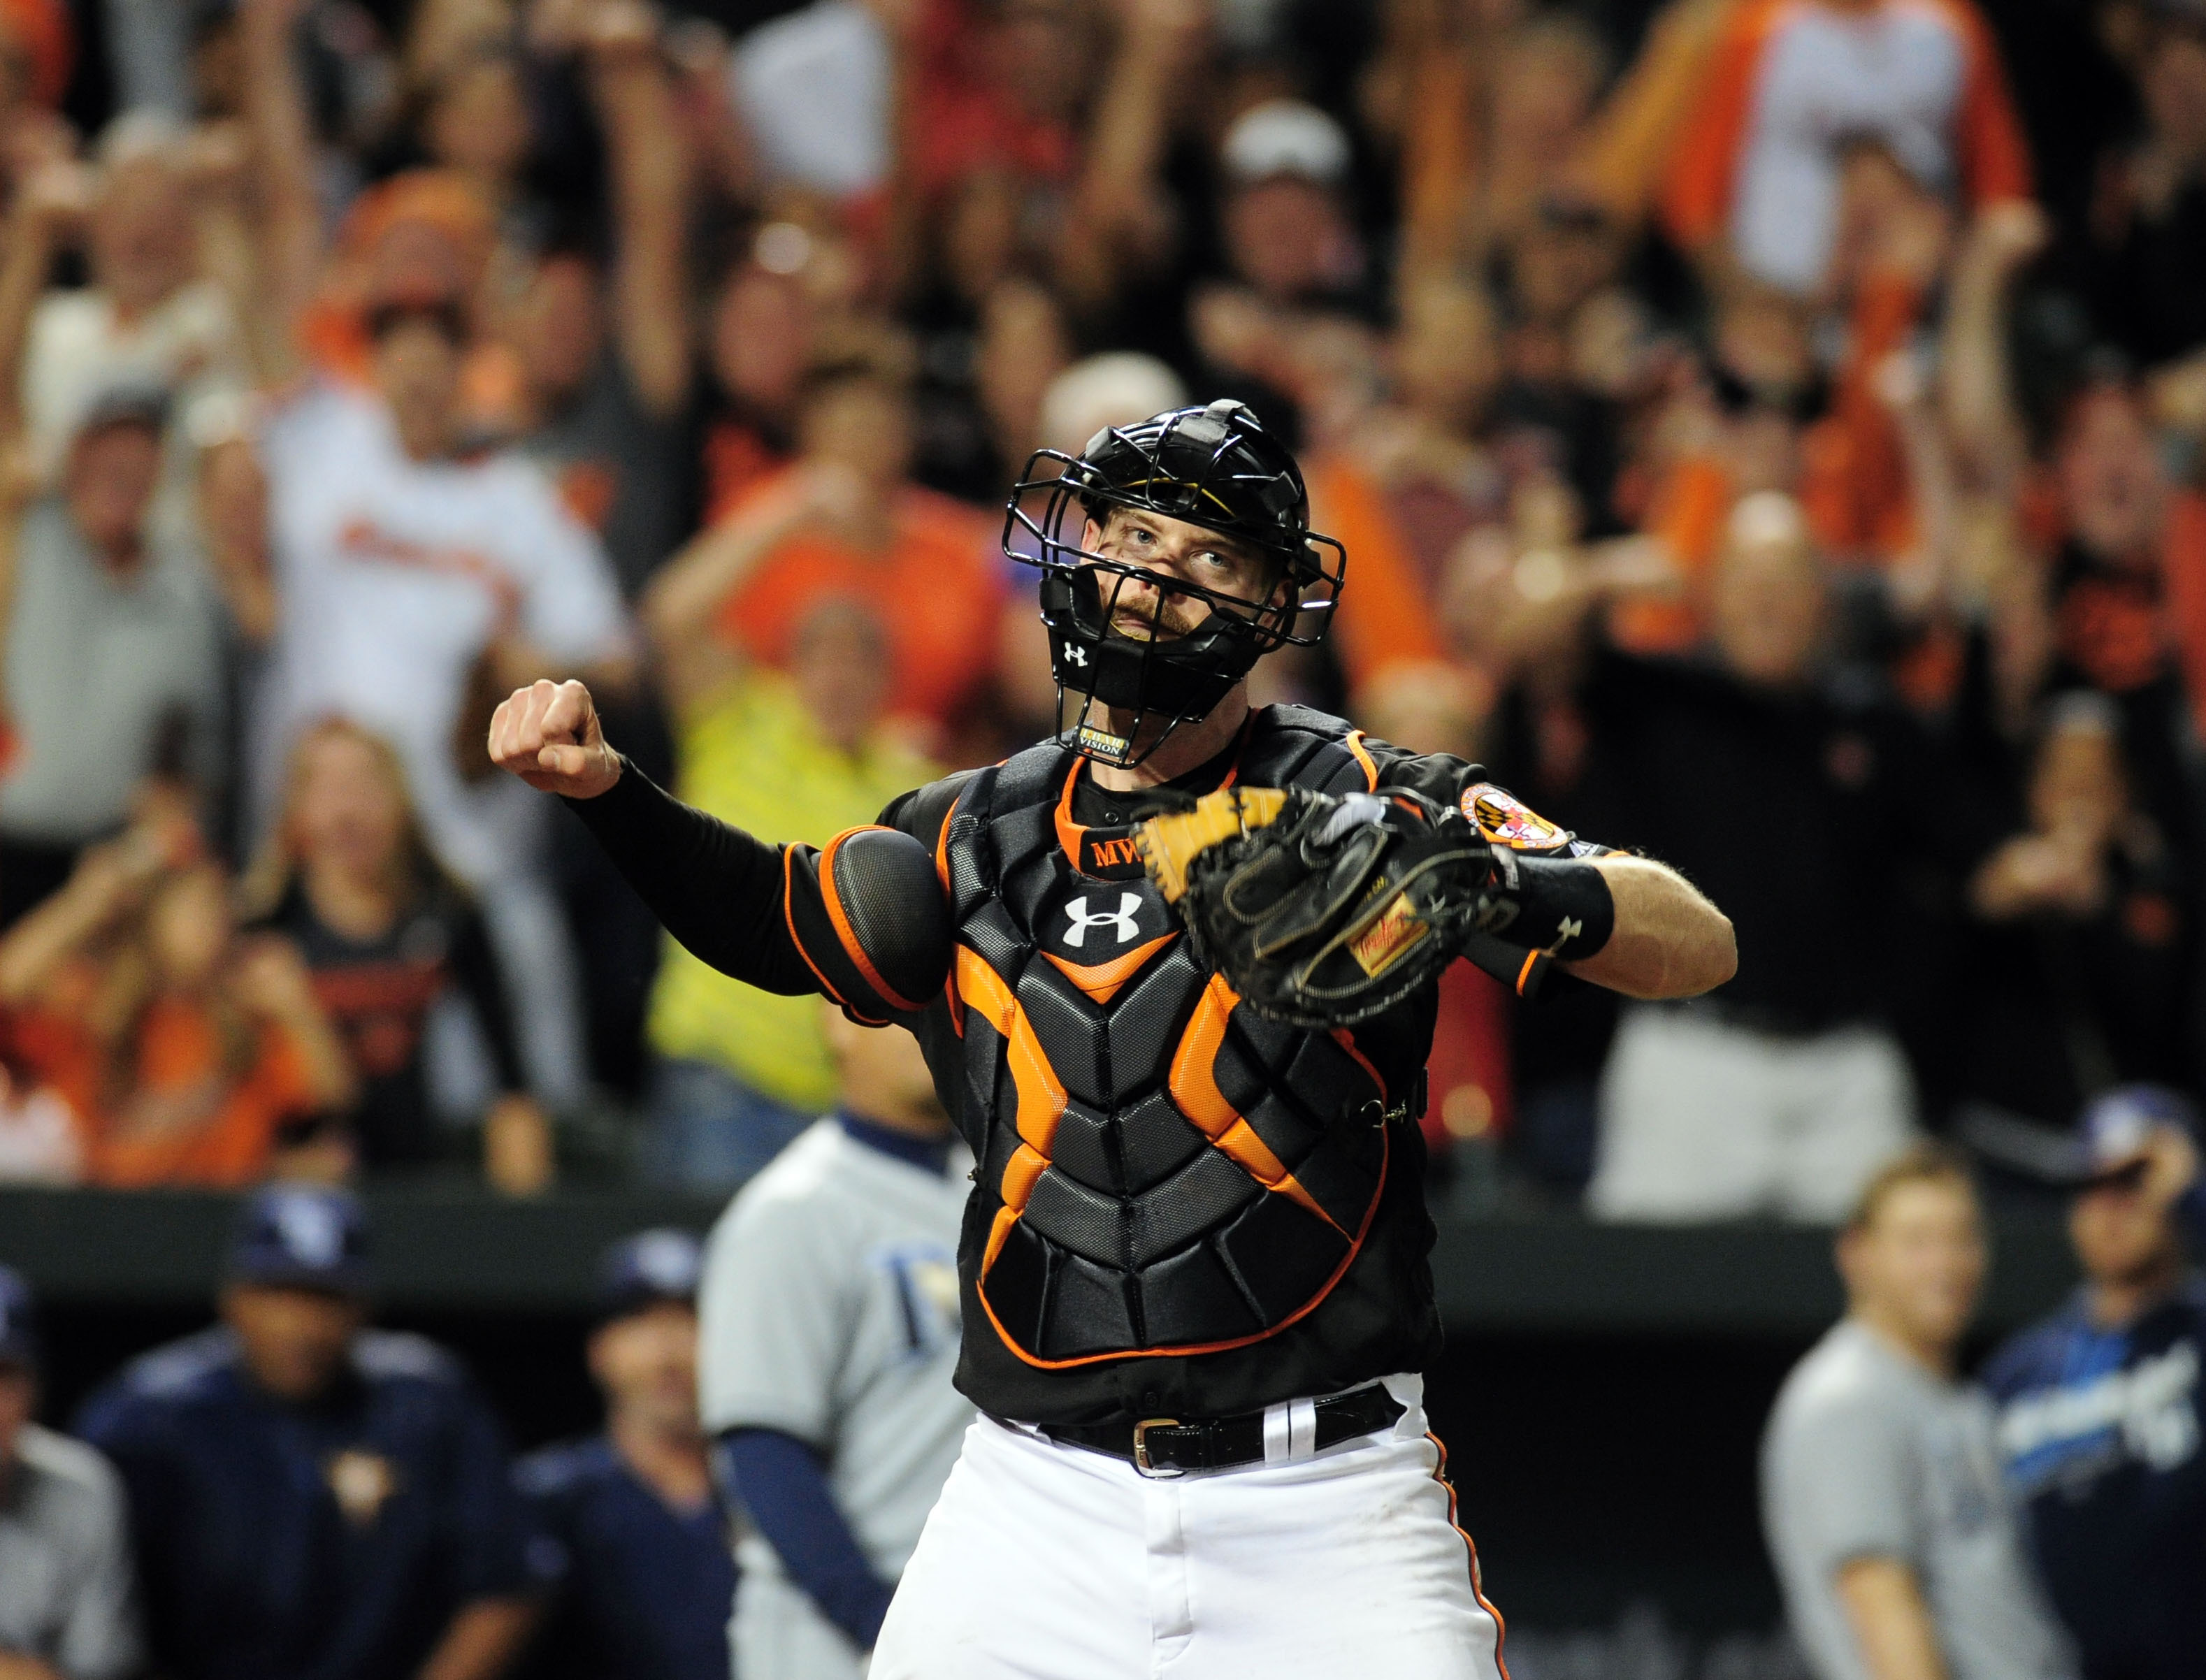 9542767-mlb-tampa-bay-rays-at-baltimore-orioles-1